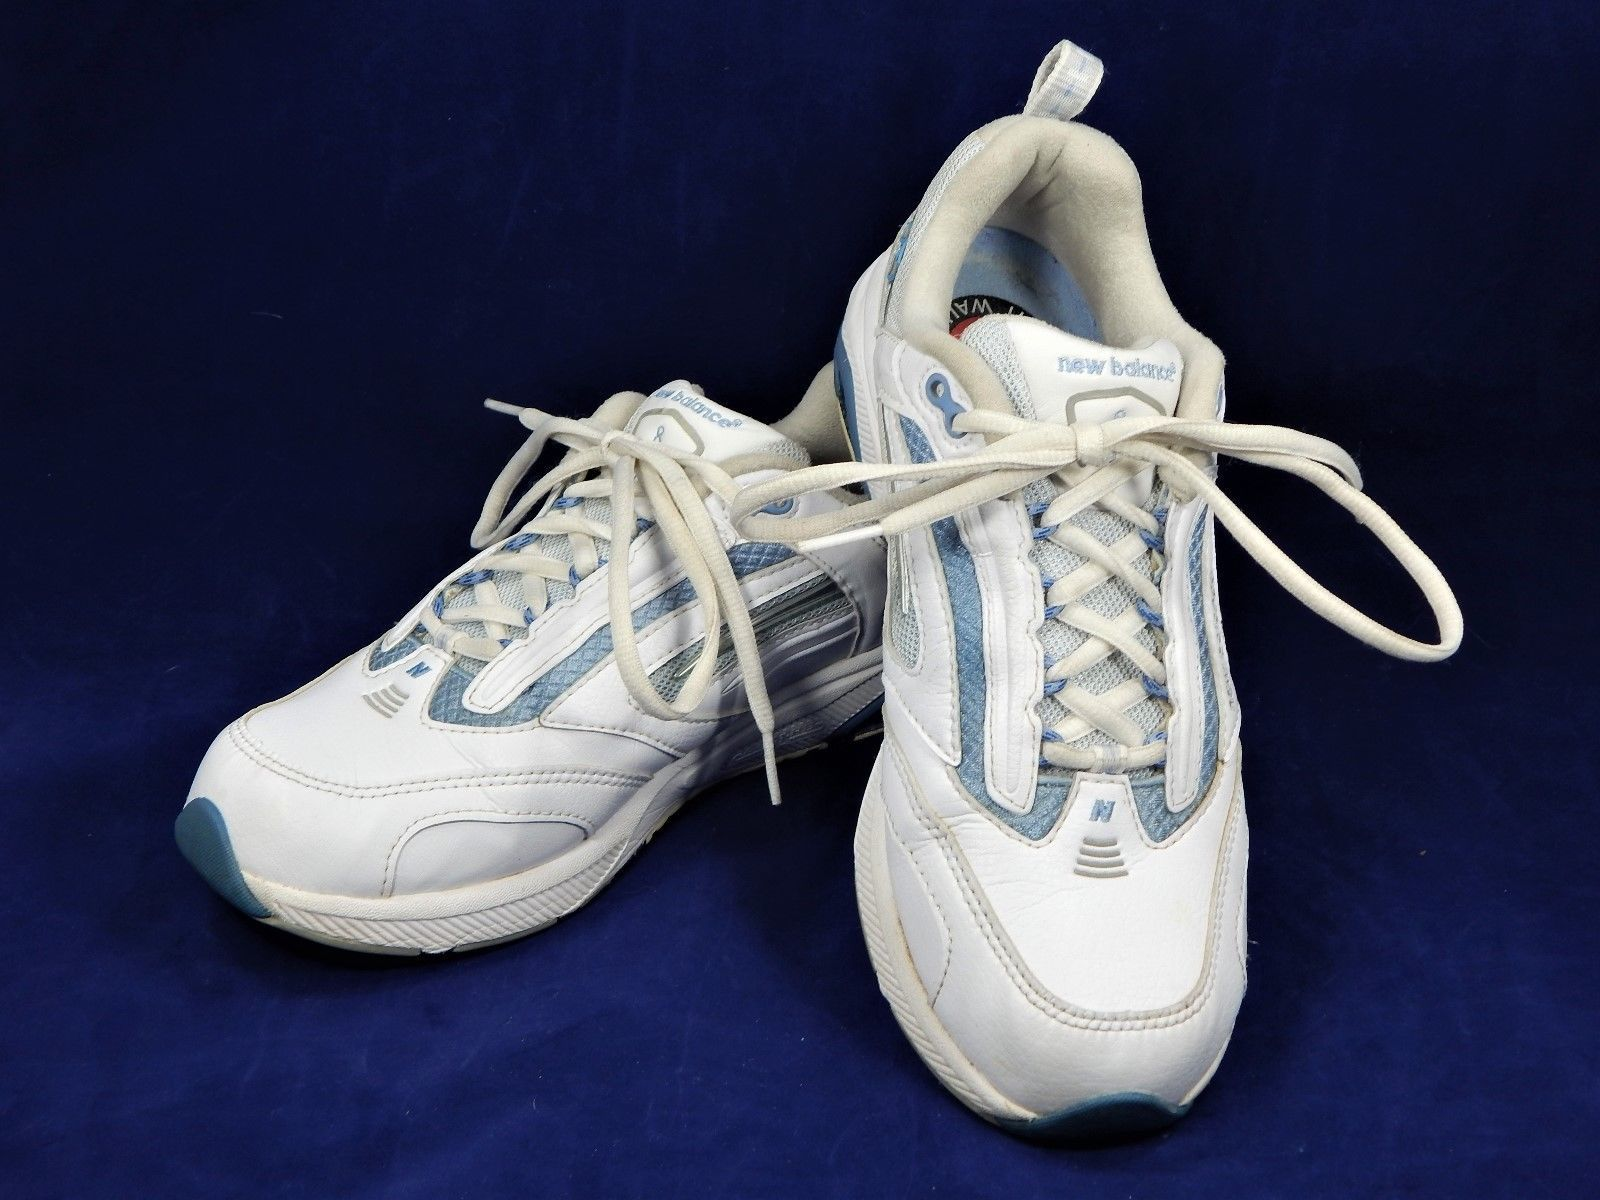 New Balance WW830LB Women s Shoes White   Light Blue Walking Shoe Size 8B  EUC! 0ac8b9ff78